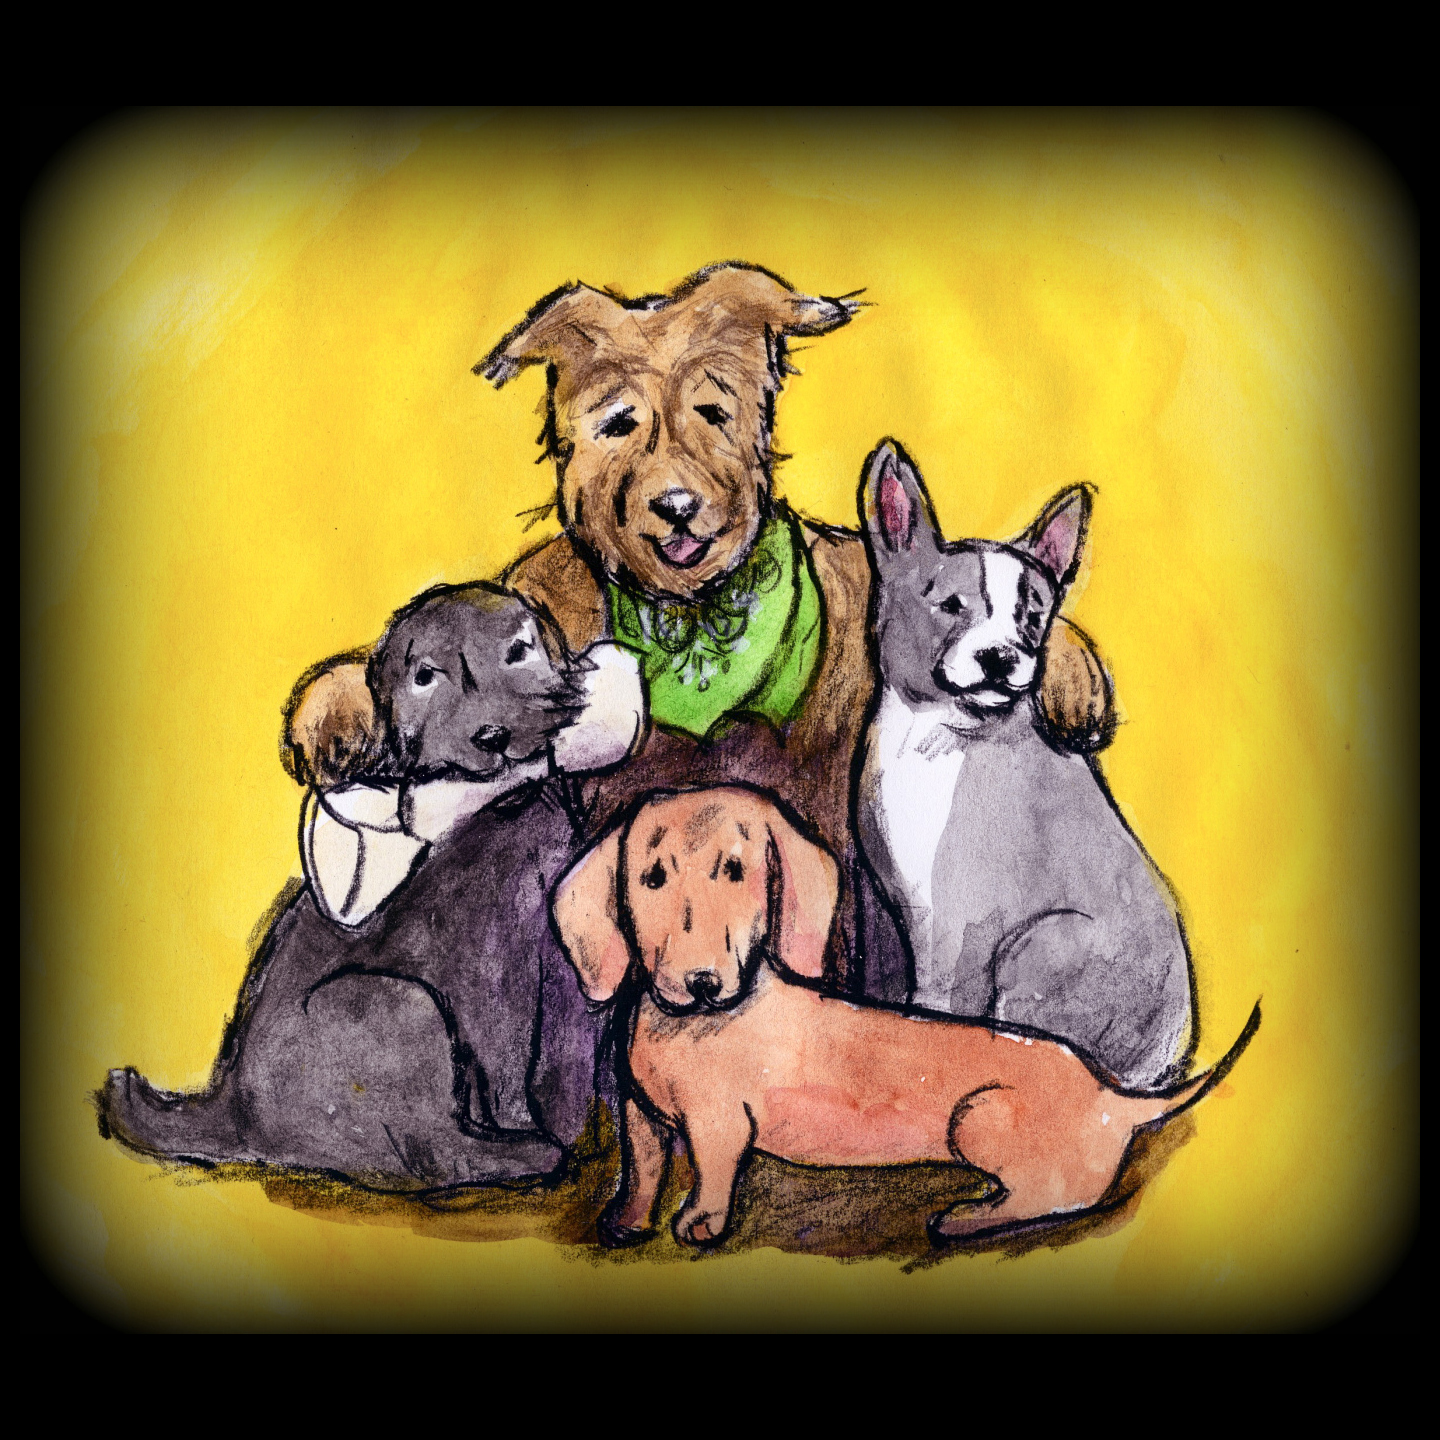 FurBabies is a 501(c)(3) Non-Profit Organization consisting of volunteer dog lovers whose mission is to rescue, provide safe and loving housing and ultimately find an adoptive home for abandoned, stray and neglected dogs. -